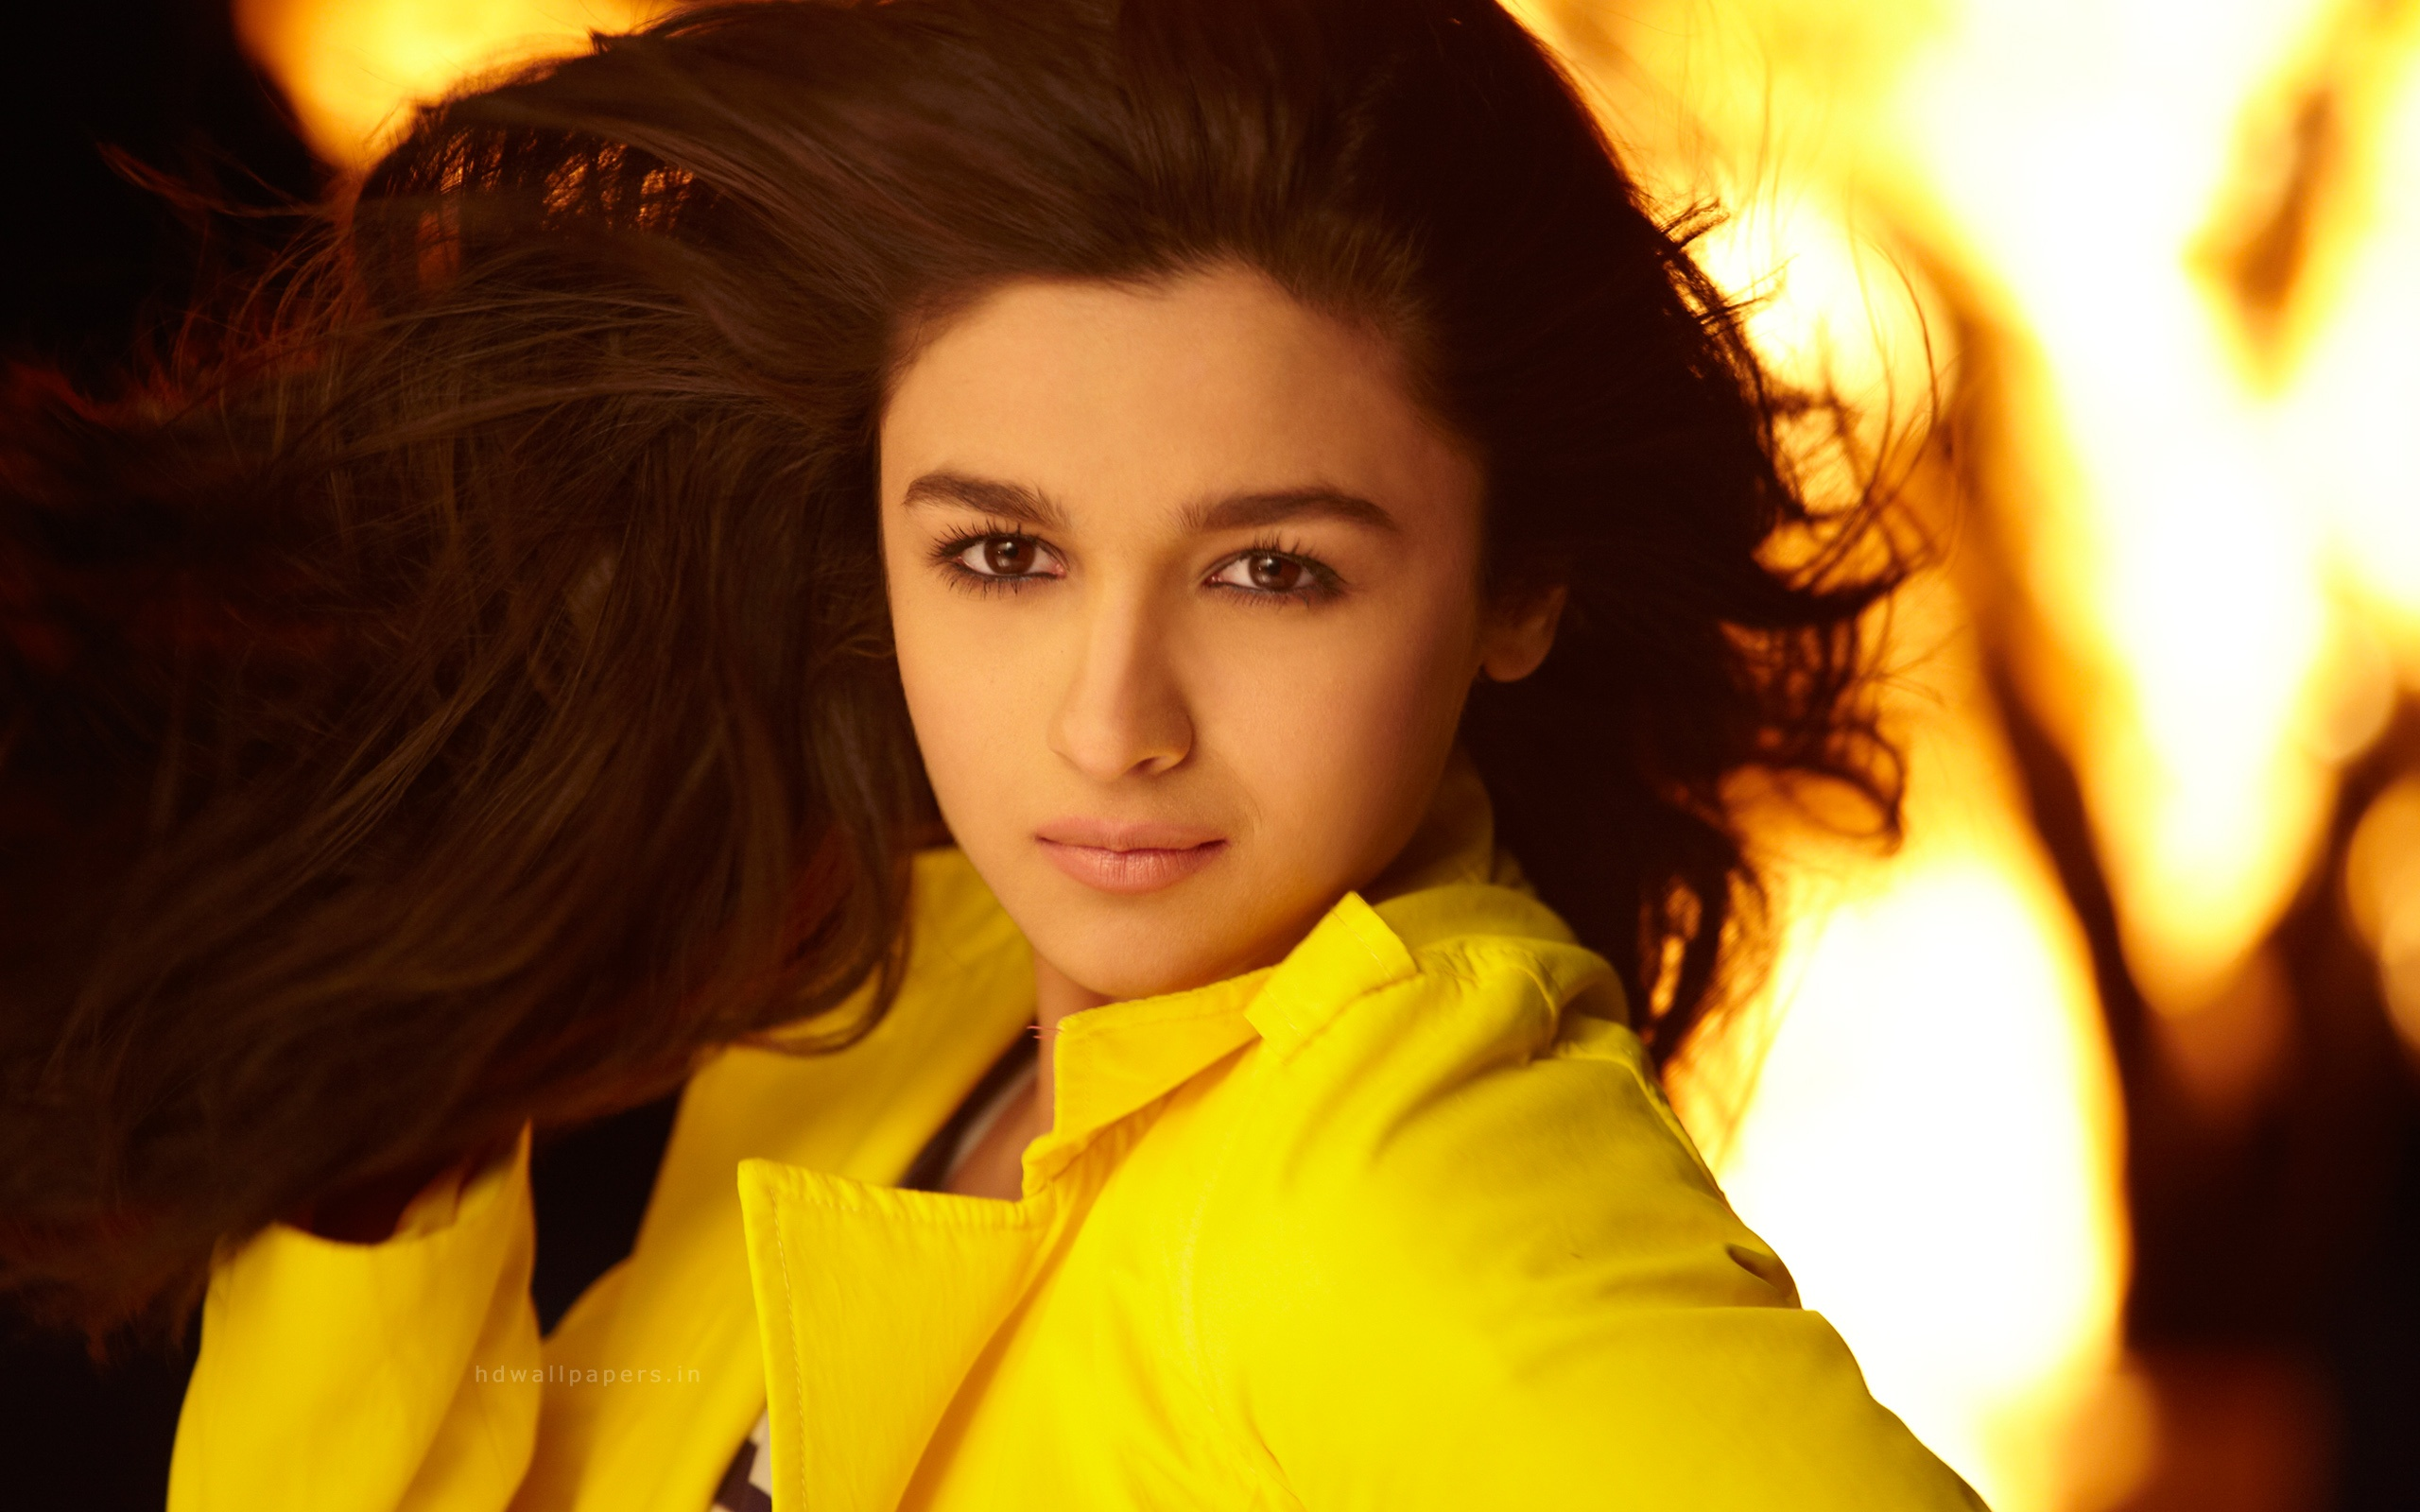 Alia Bhatt In Student Of The Year Wallpapers In Jpg Format For Free